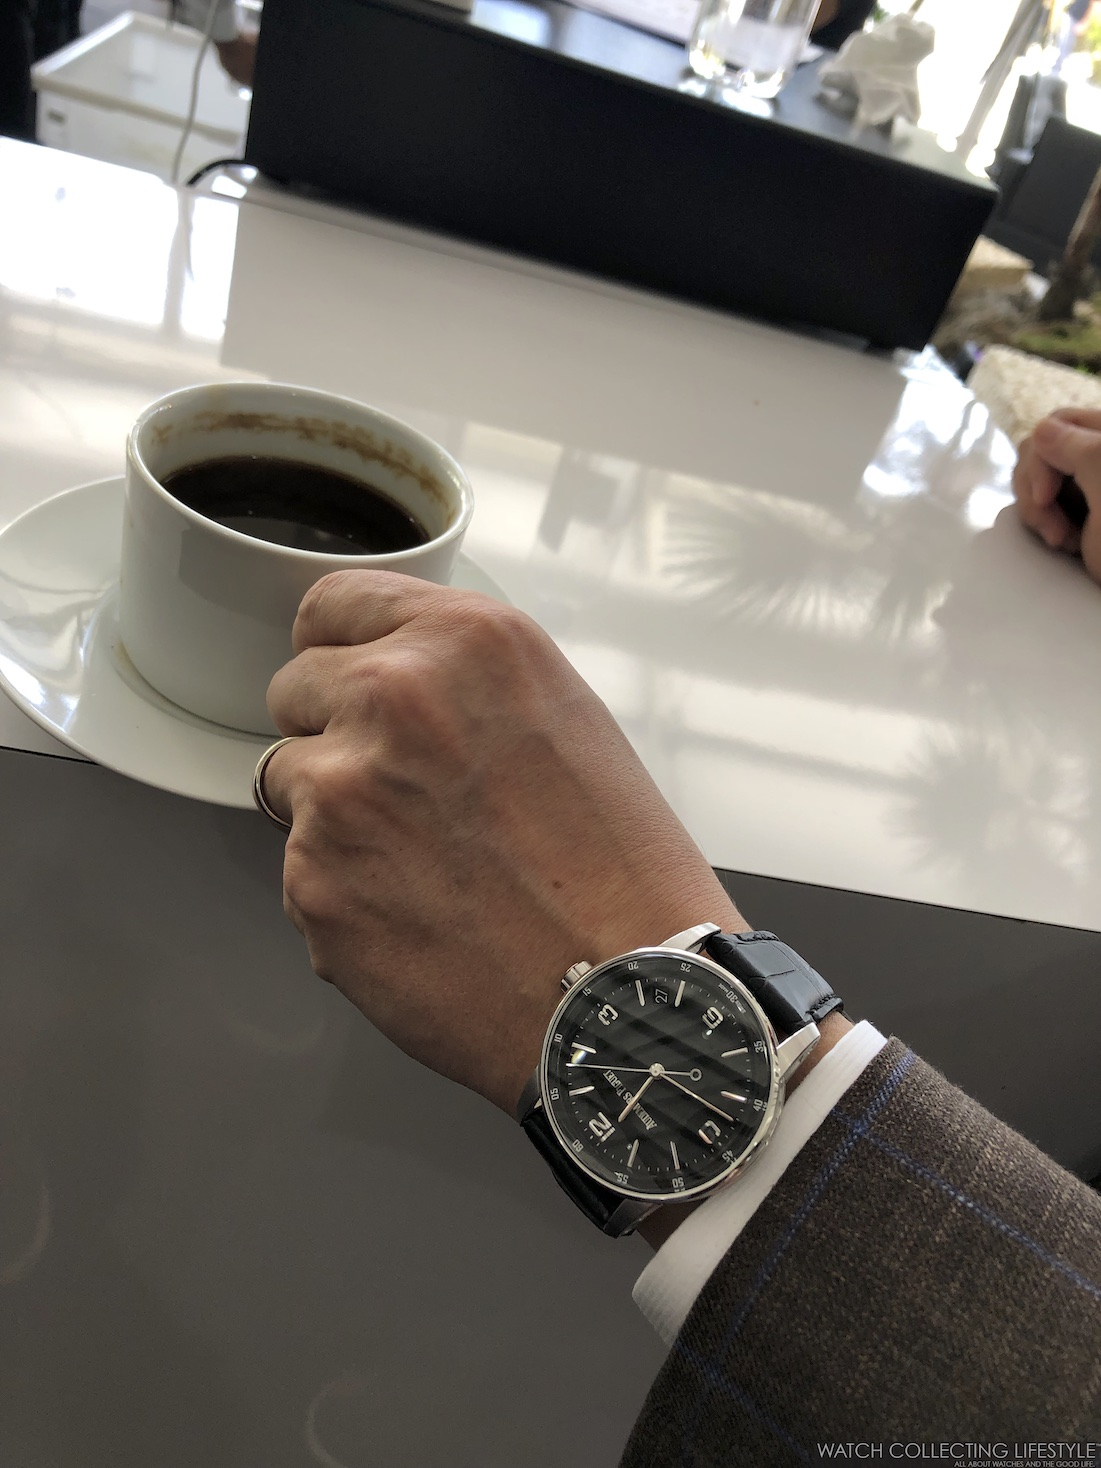 Audemars Piguet CODE 11.59 Date Model on wrist